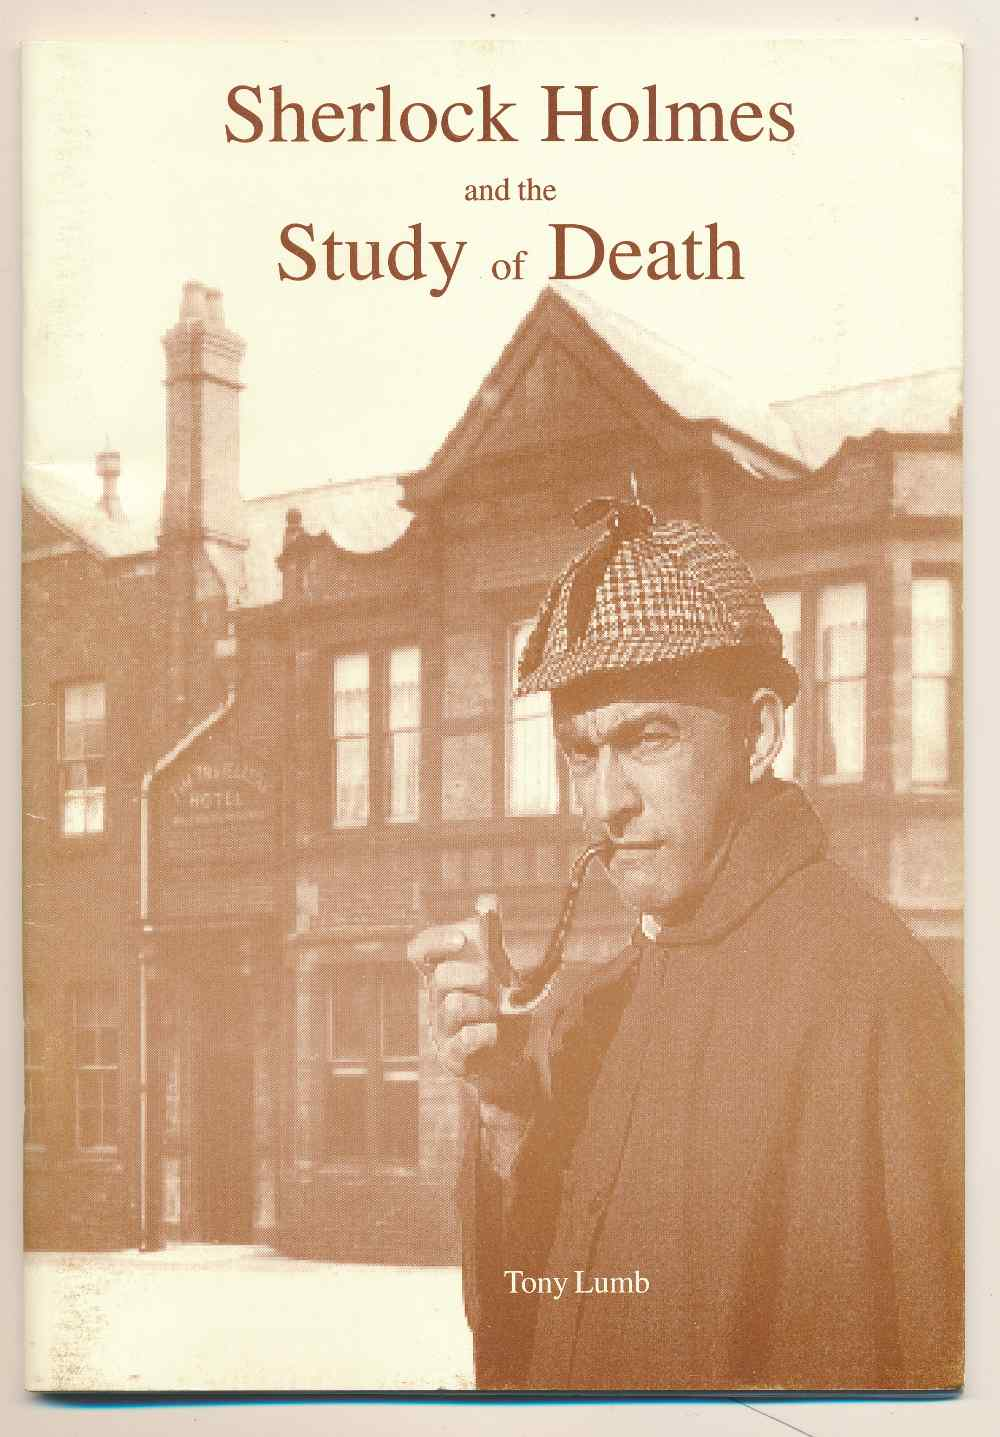 Sherlock Holmes and the study of death